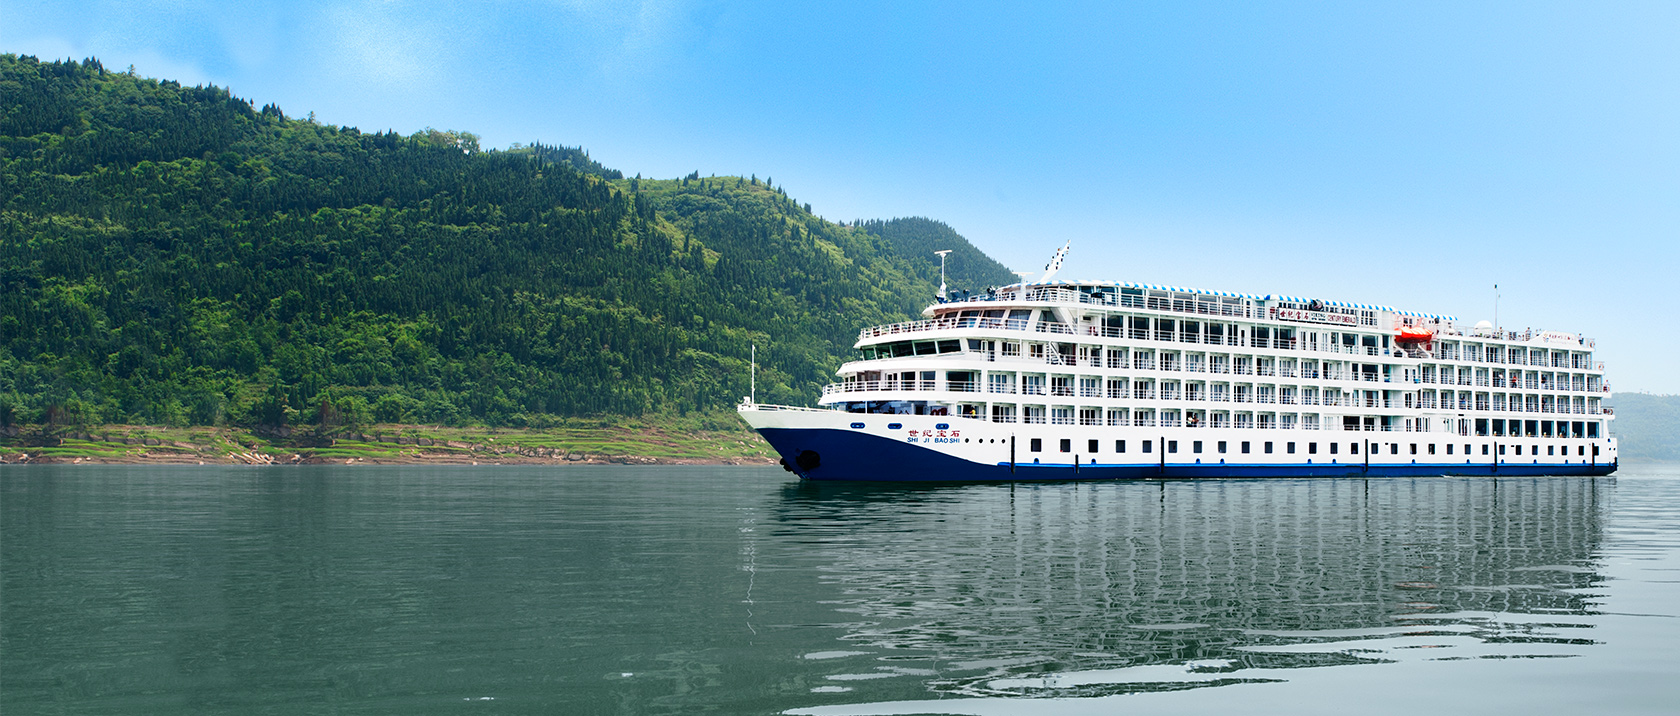 Small Ship Voyages Book Luxury Cruises with Viking Cruises - Explore the world in comfort with Viking River Cruises